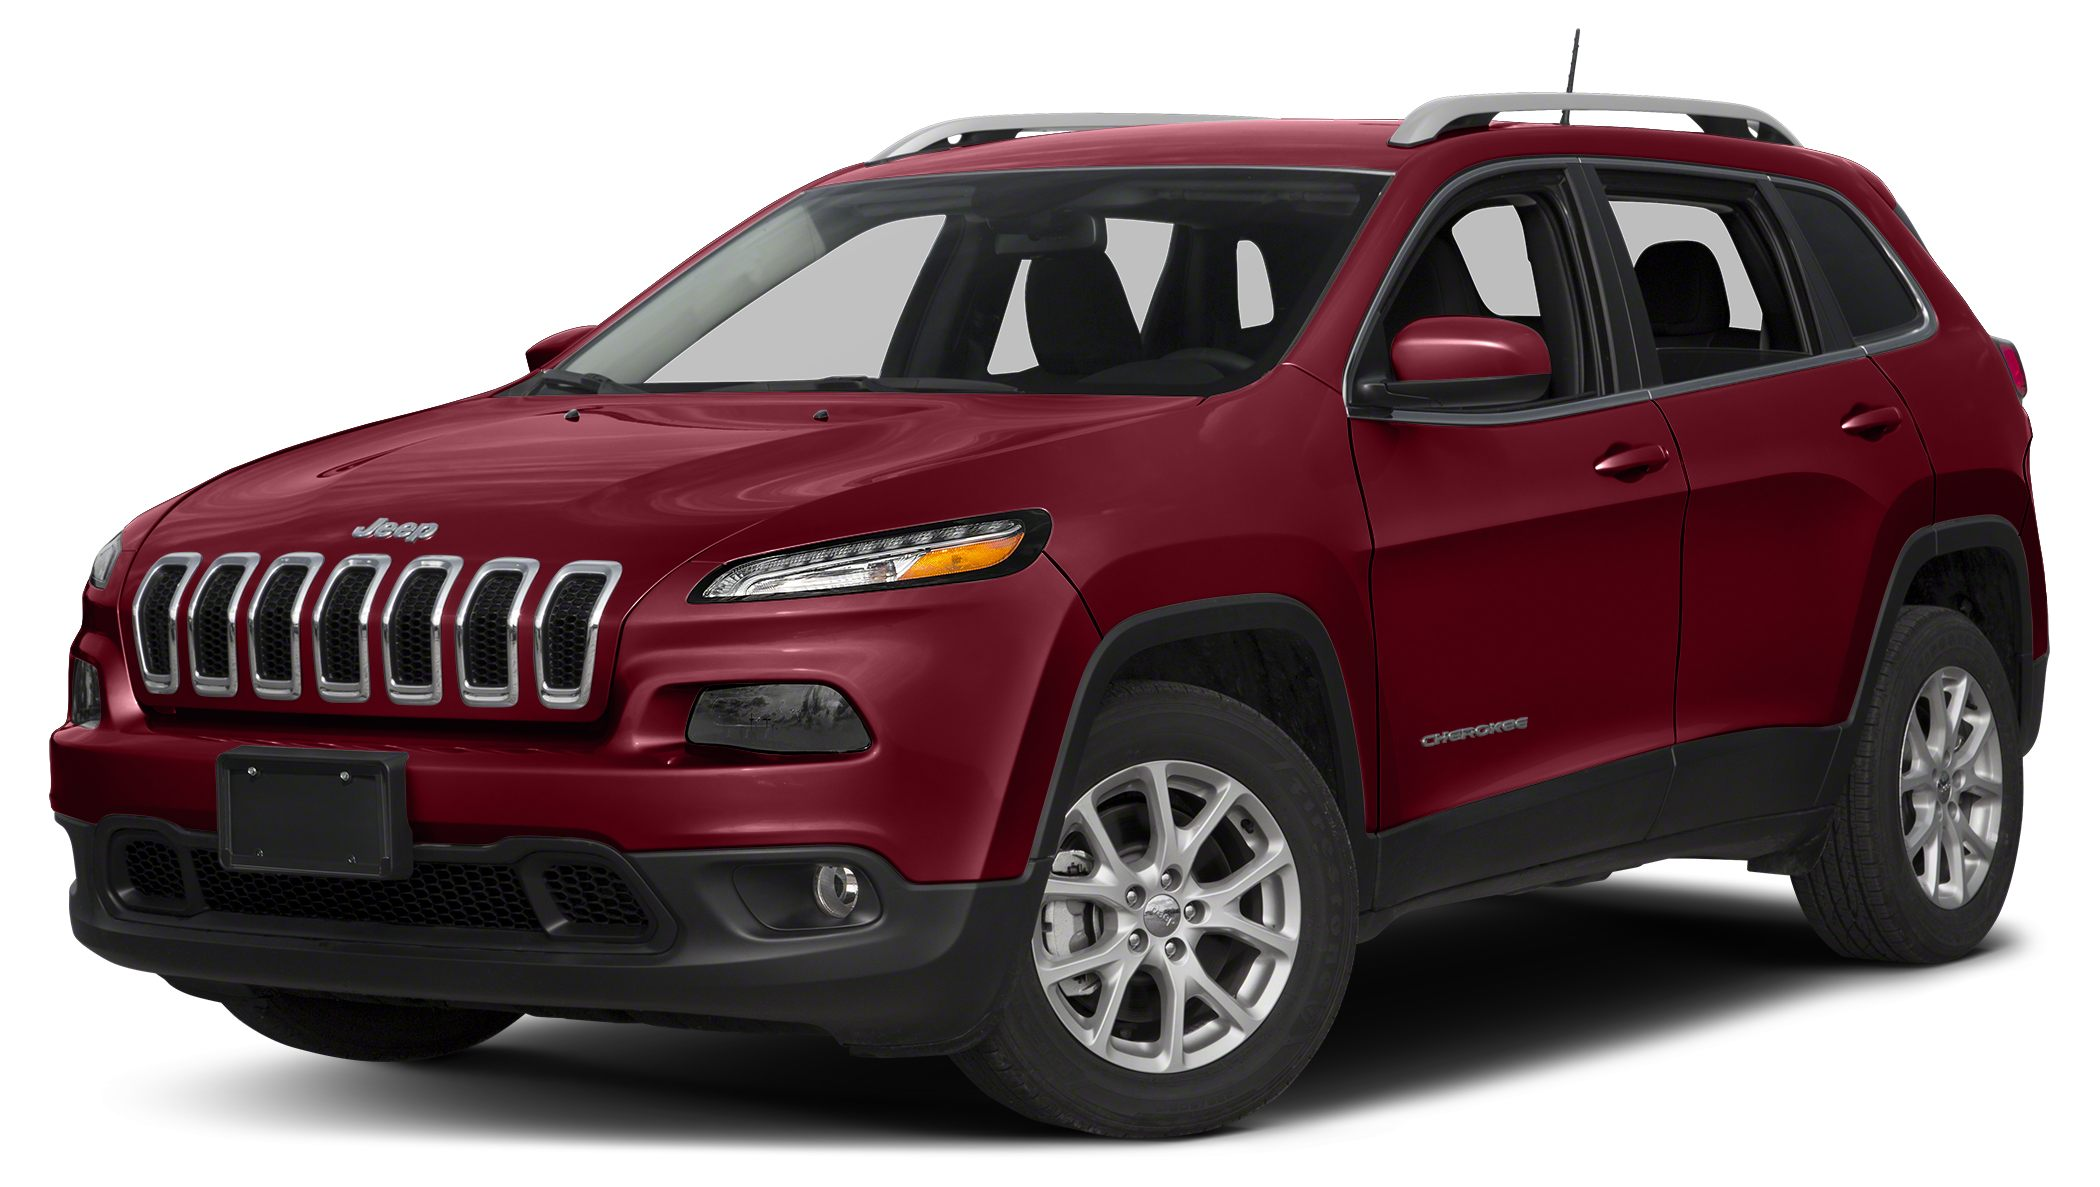 2017 Jeep Cherokee Latitude This car sparkles Are you interested in a simply outstanding SUV The